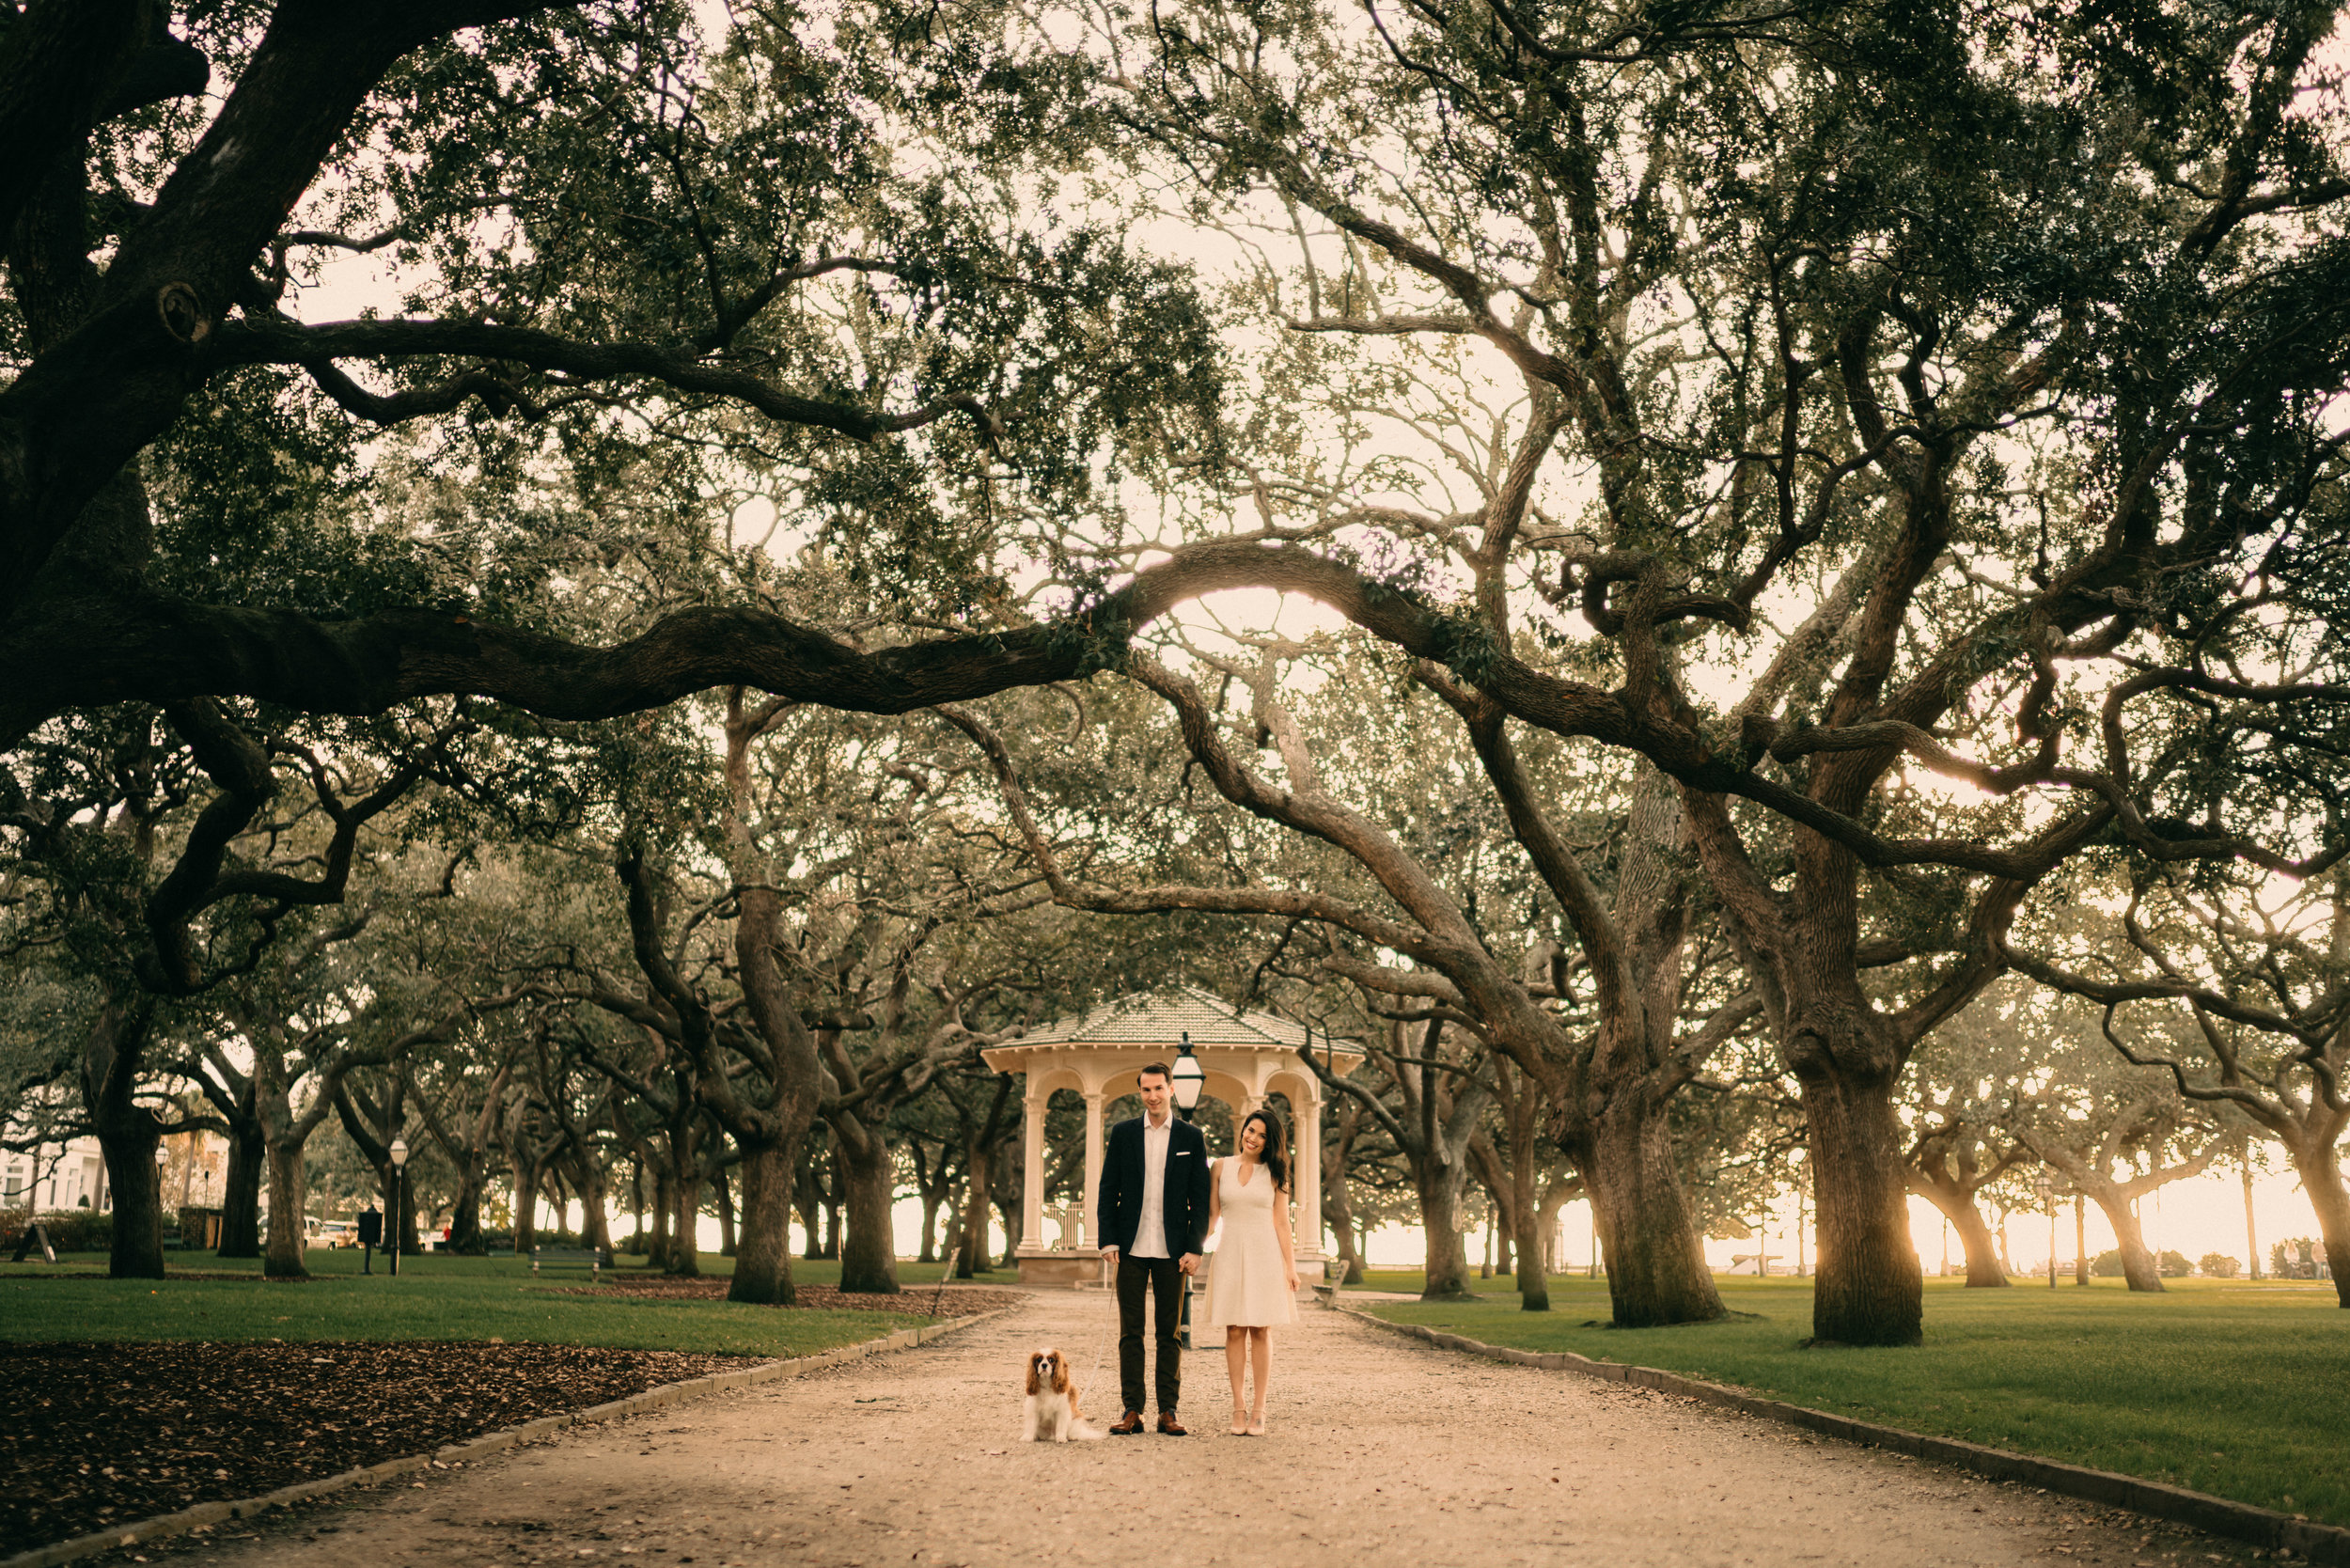 charleston south carolina engagement shoot - We traveled with Angela, Griffin, and of course their dog Cooper, to Charleston, South Carolina for their engagement photoshoot.